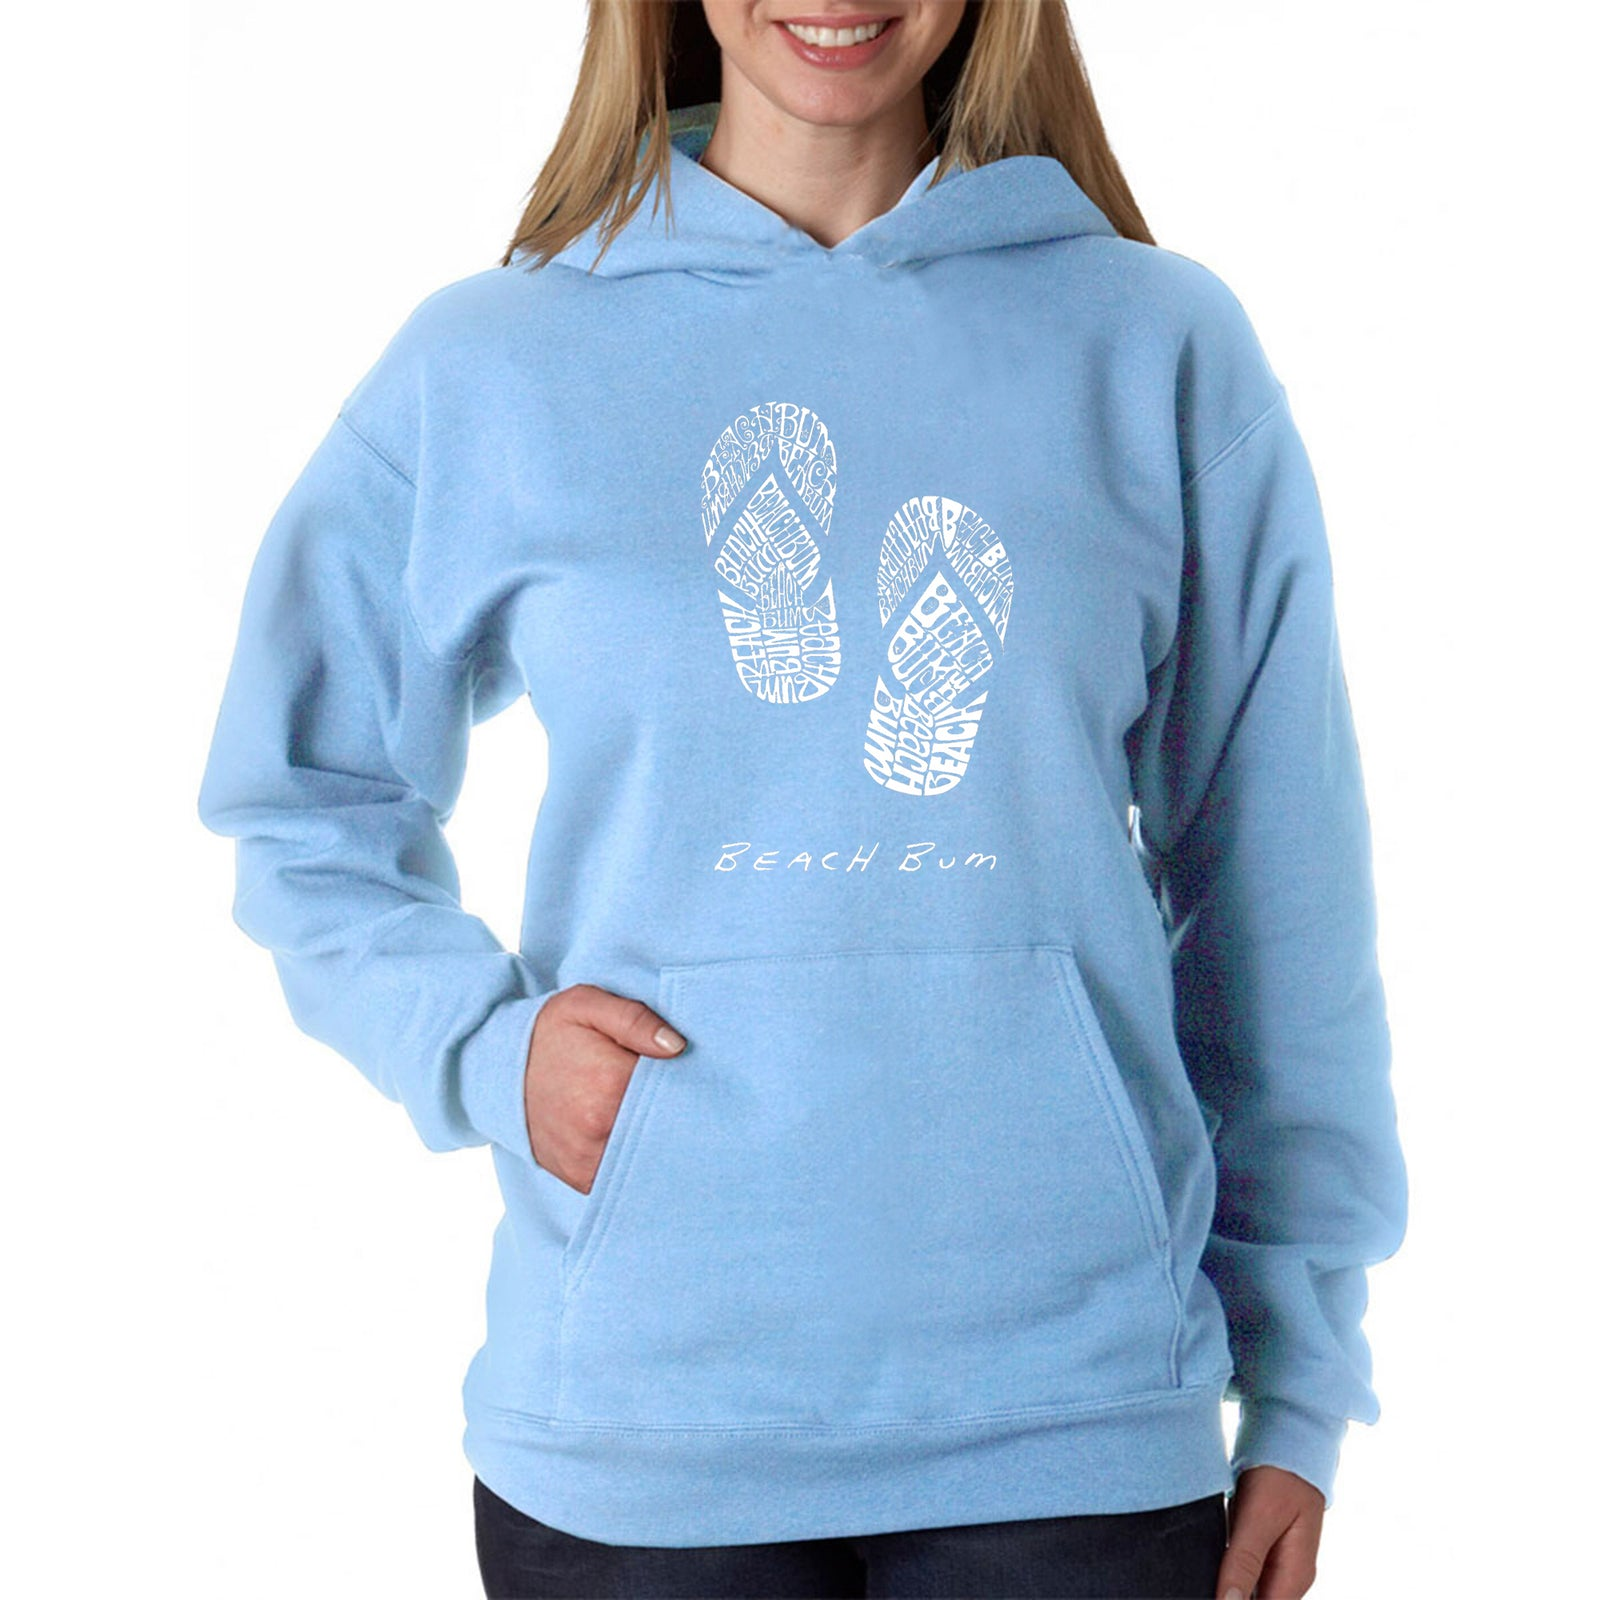 Women's Hooded Sweatshirt -BEACH BUM